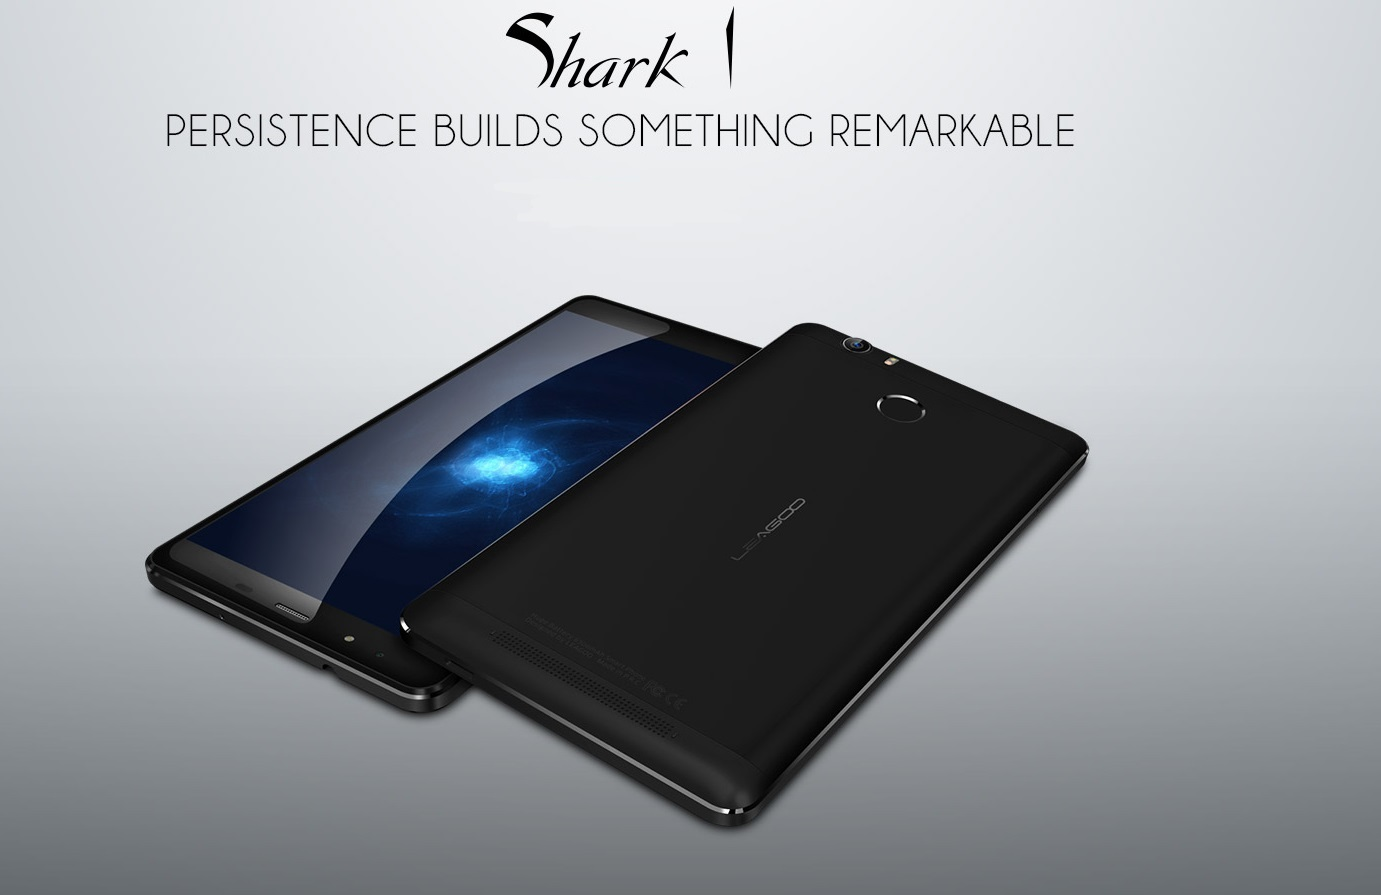 Promo of the smartphone Leagoo Shark 1